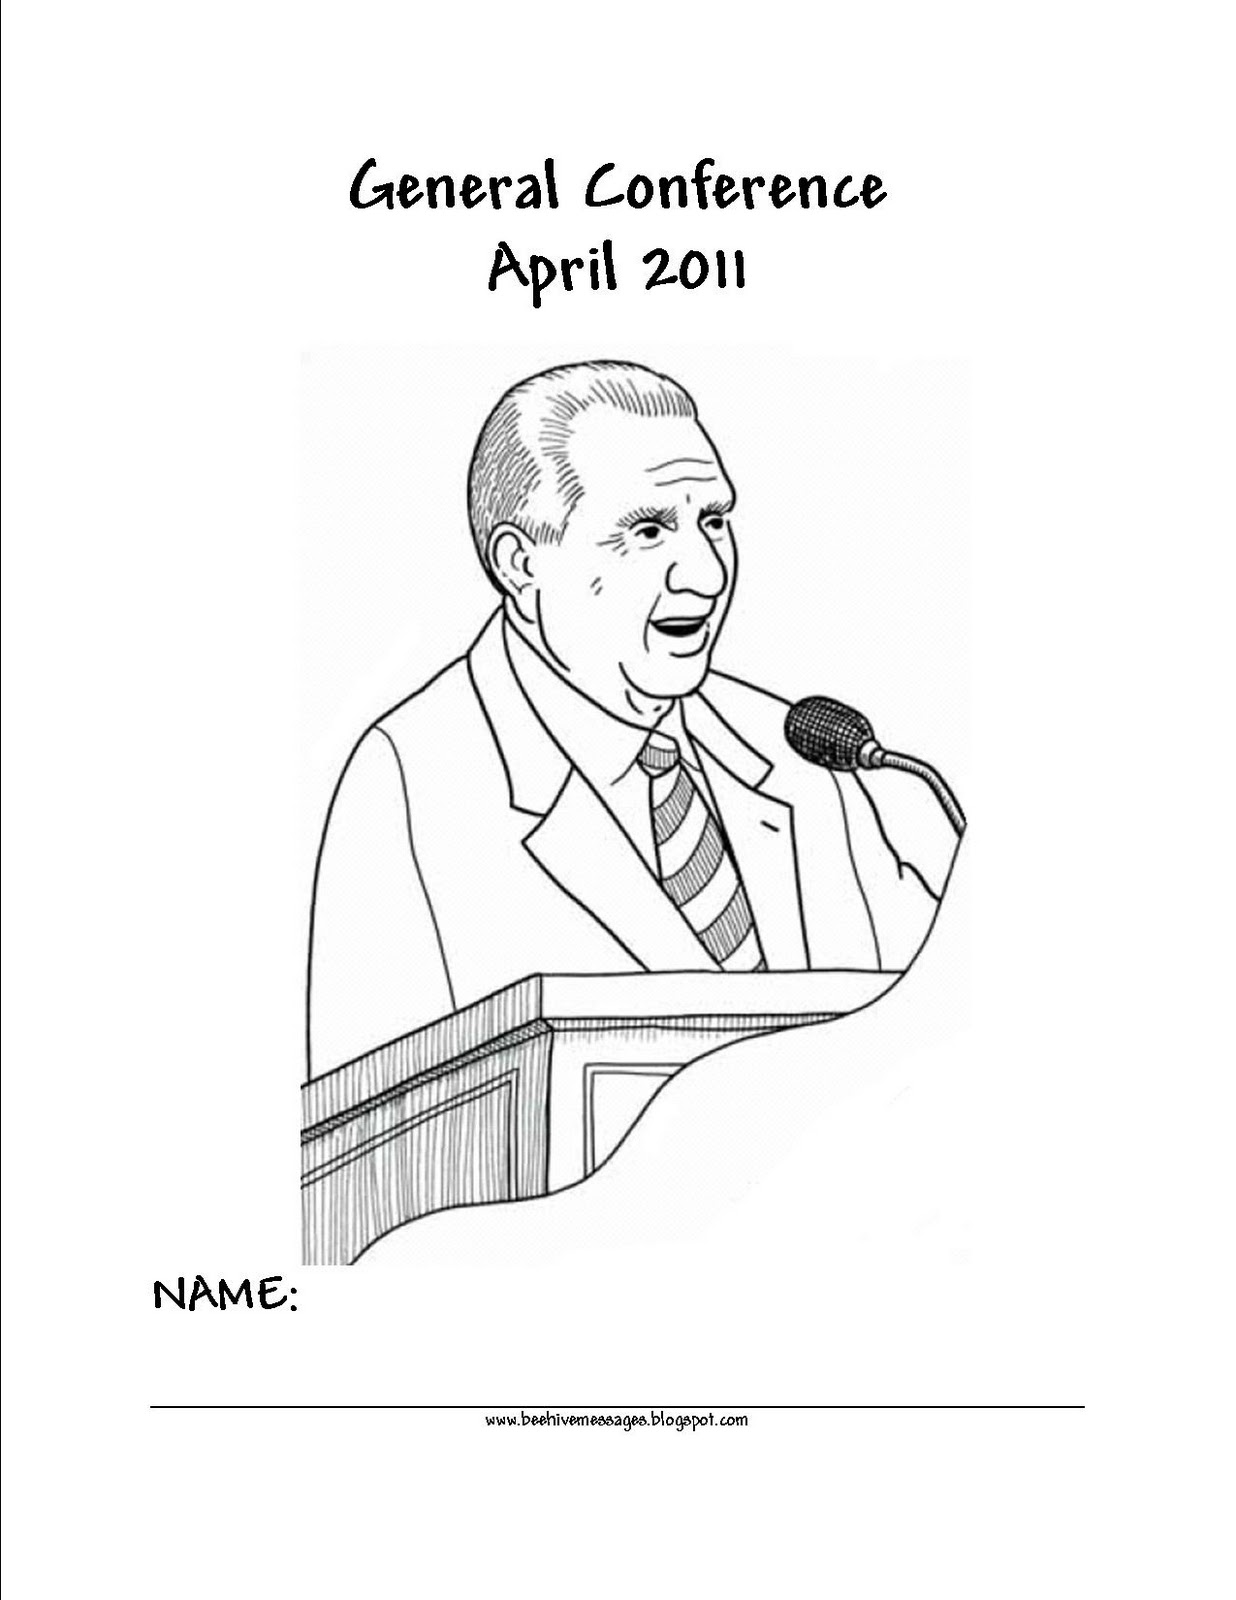 Beehive Messages: General Conference Packet April 2011